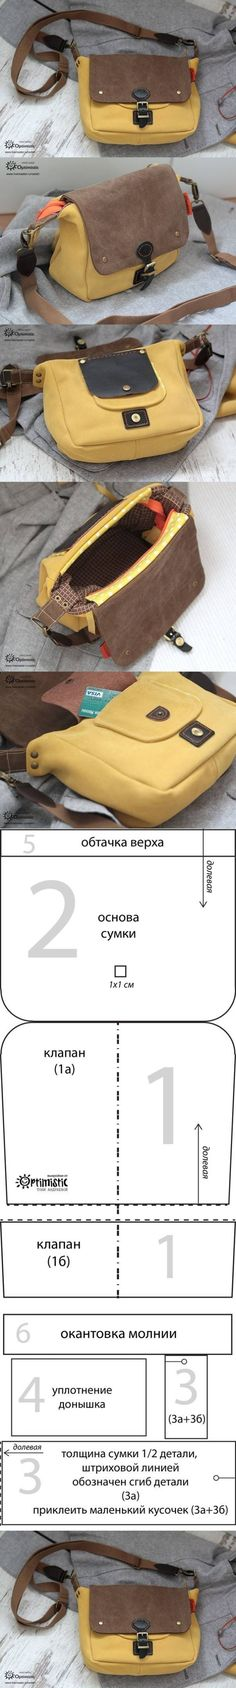 DIY Sew Handbag Pattern DIY Sew Handbag Pattern by diyforever...♥ Deniz ♥